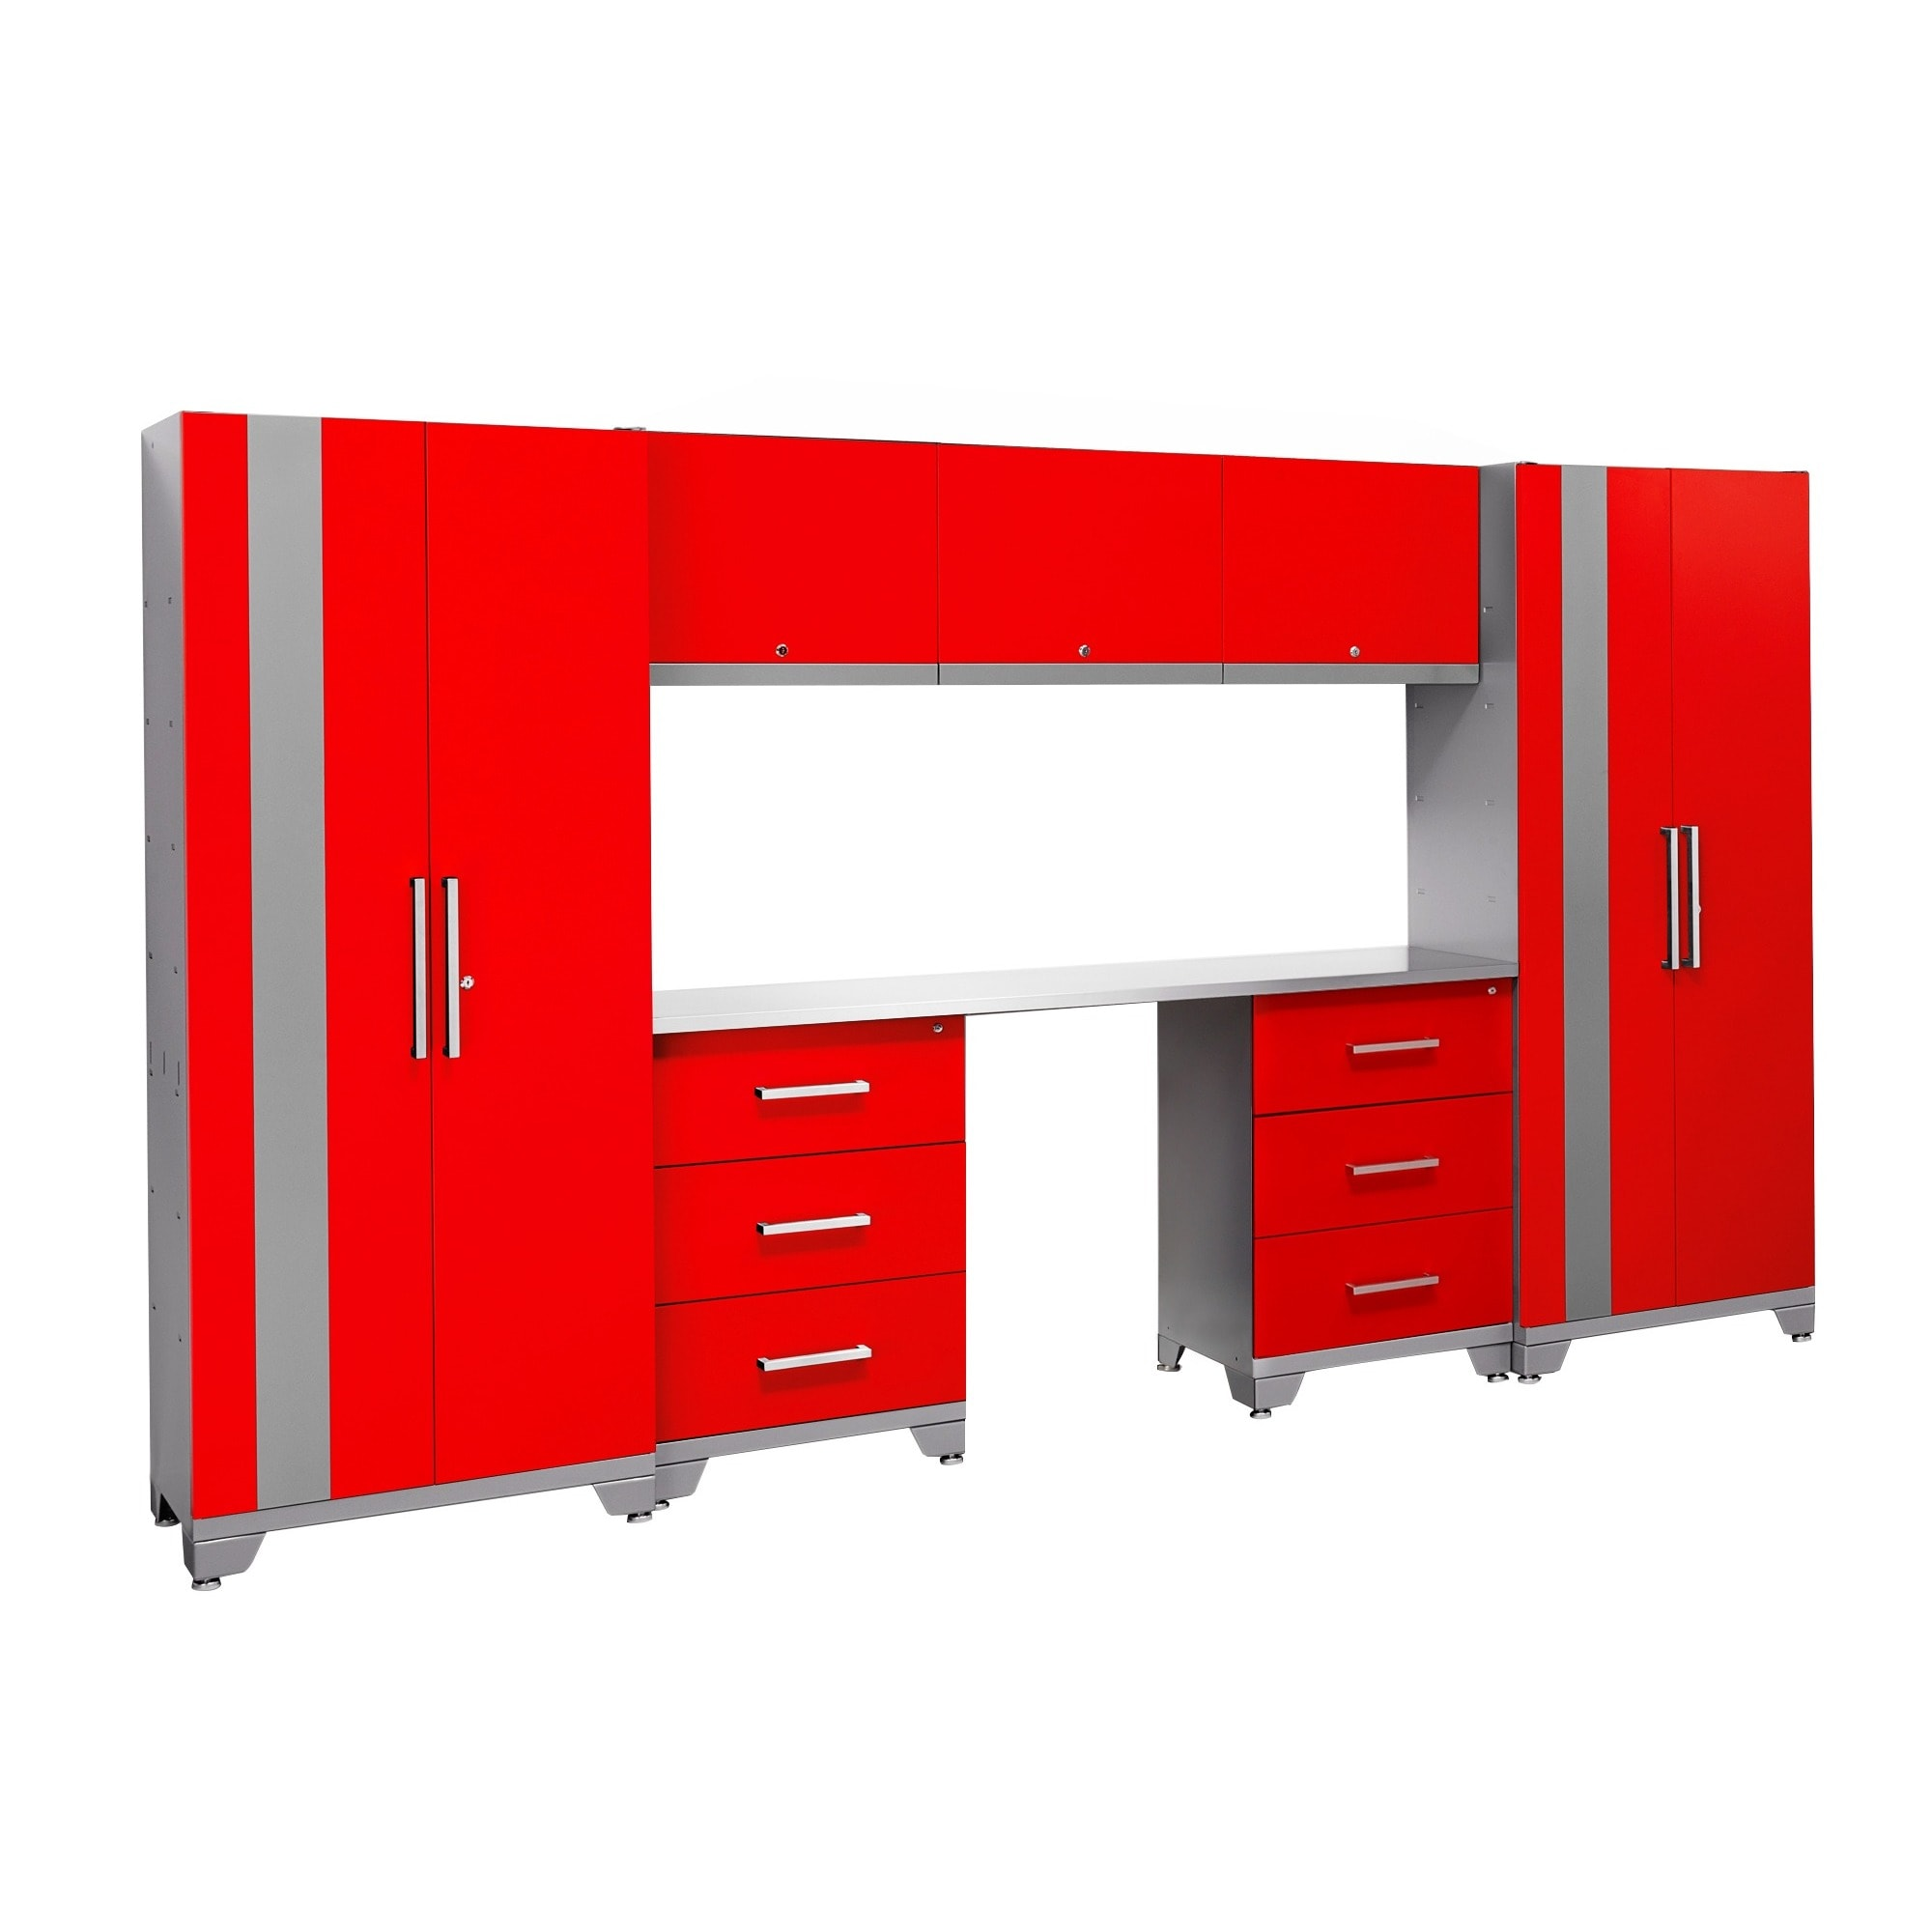 Garage Cabinets Overstock Newage Products Performance Series Red 8 Piece Metal